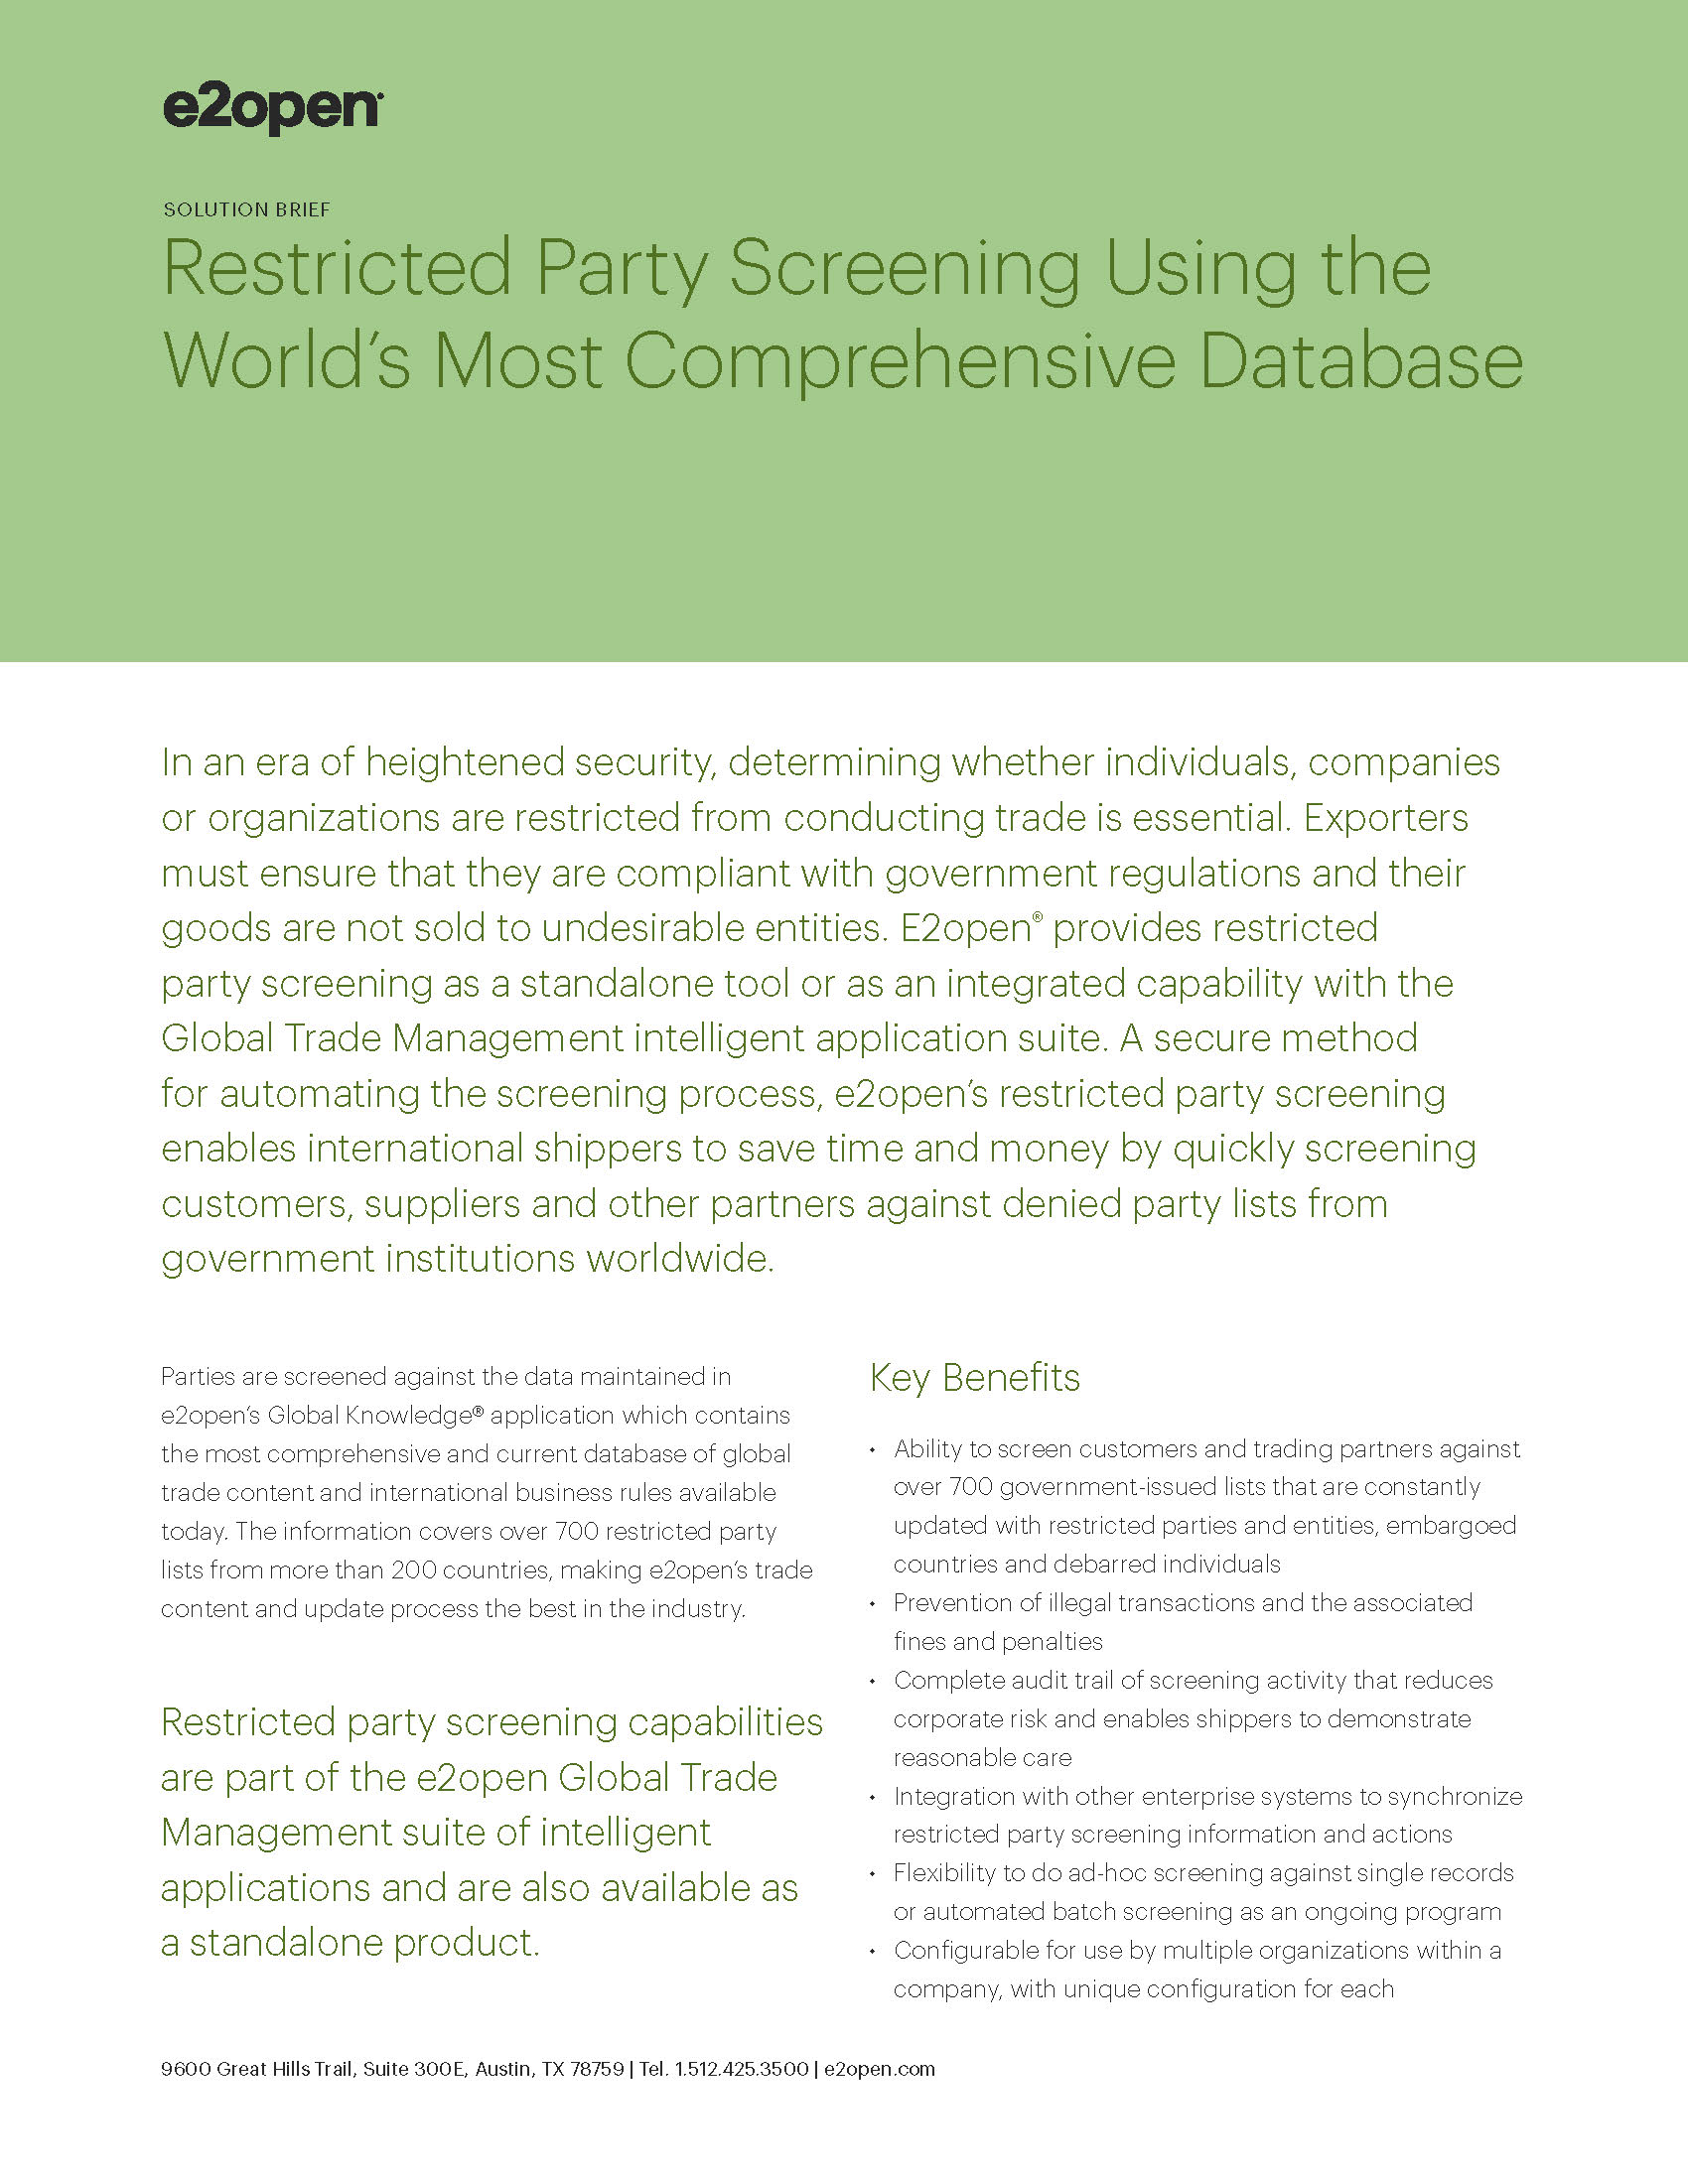 Restricted Party Screening Using the World's Most Comprehensive Database